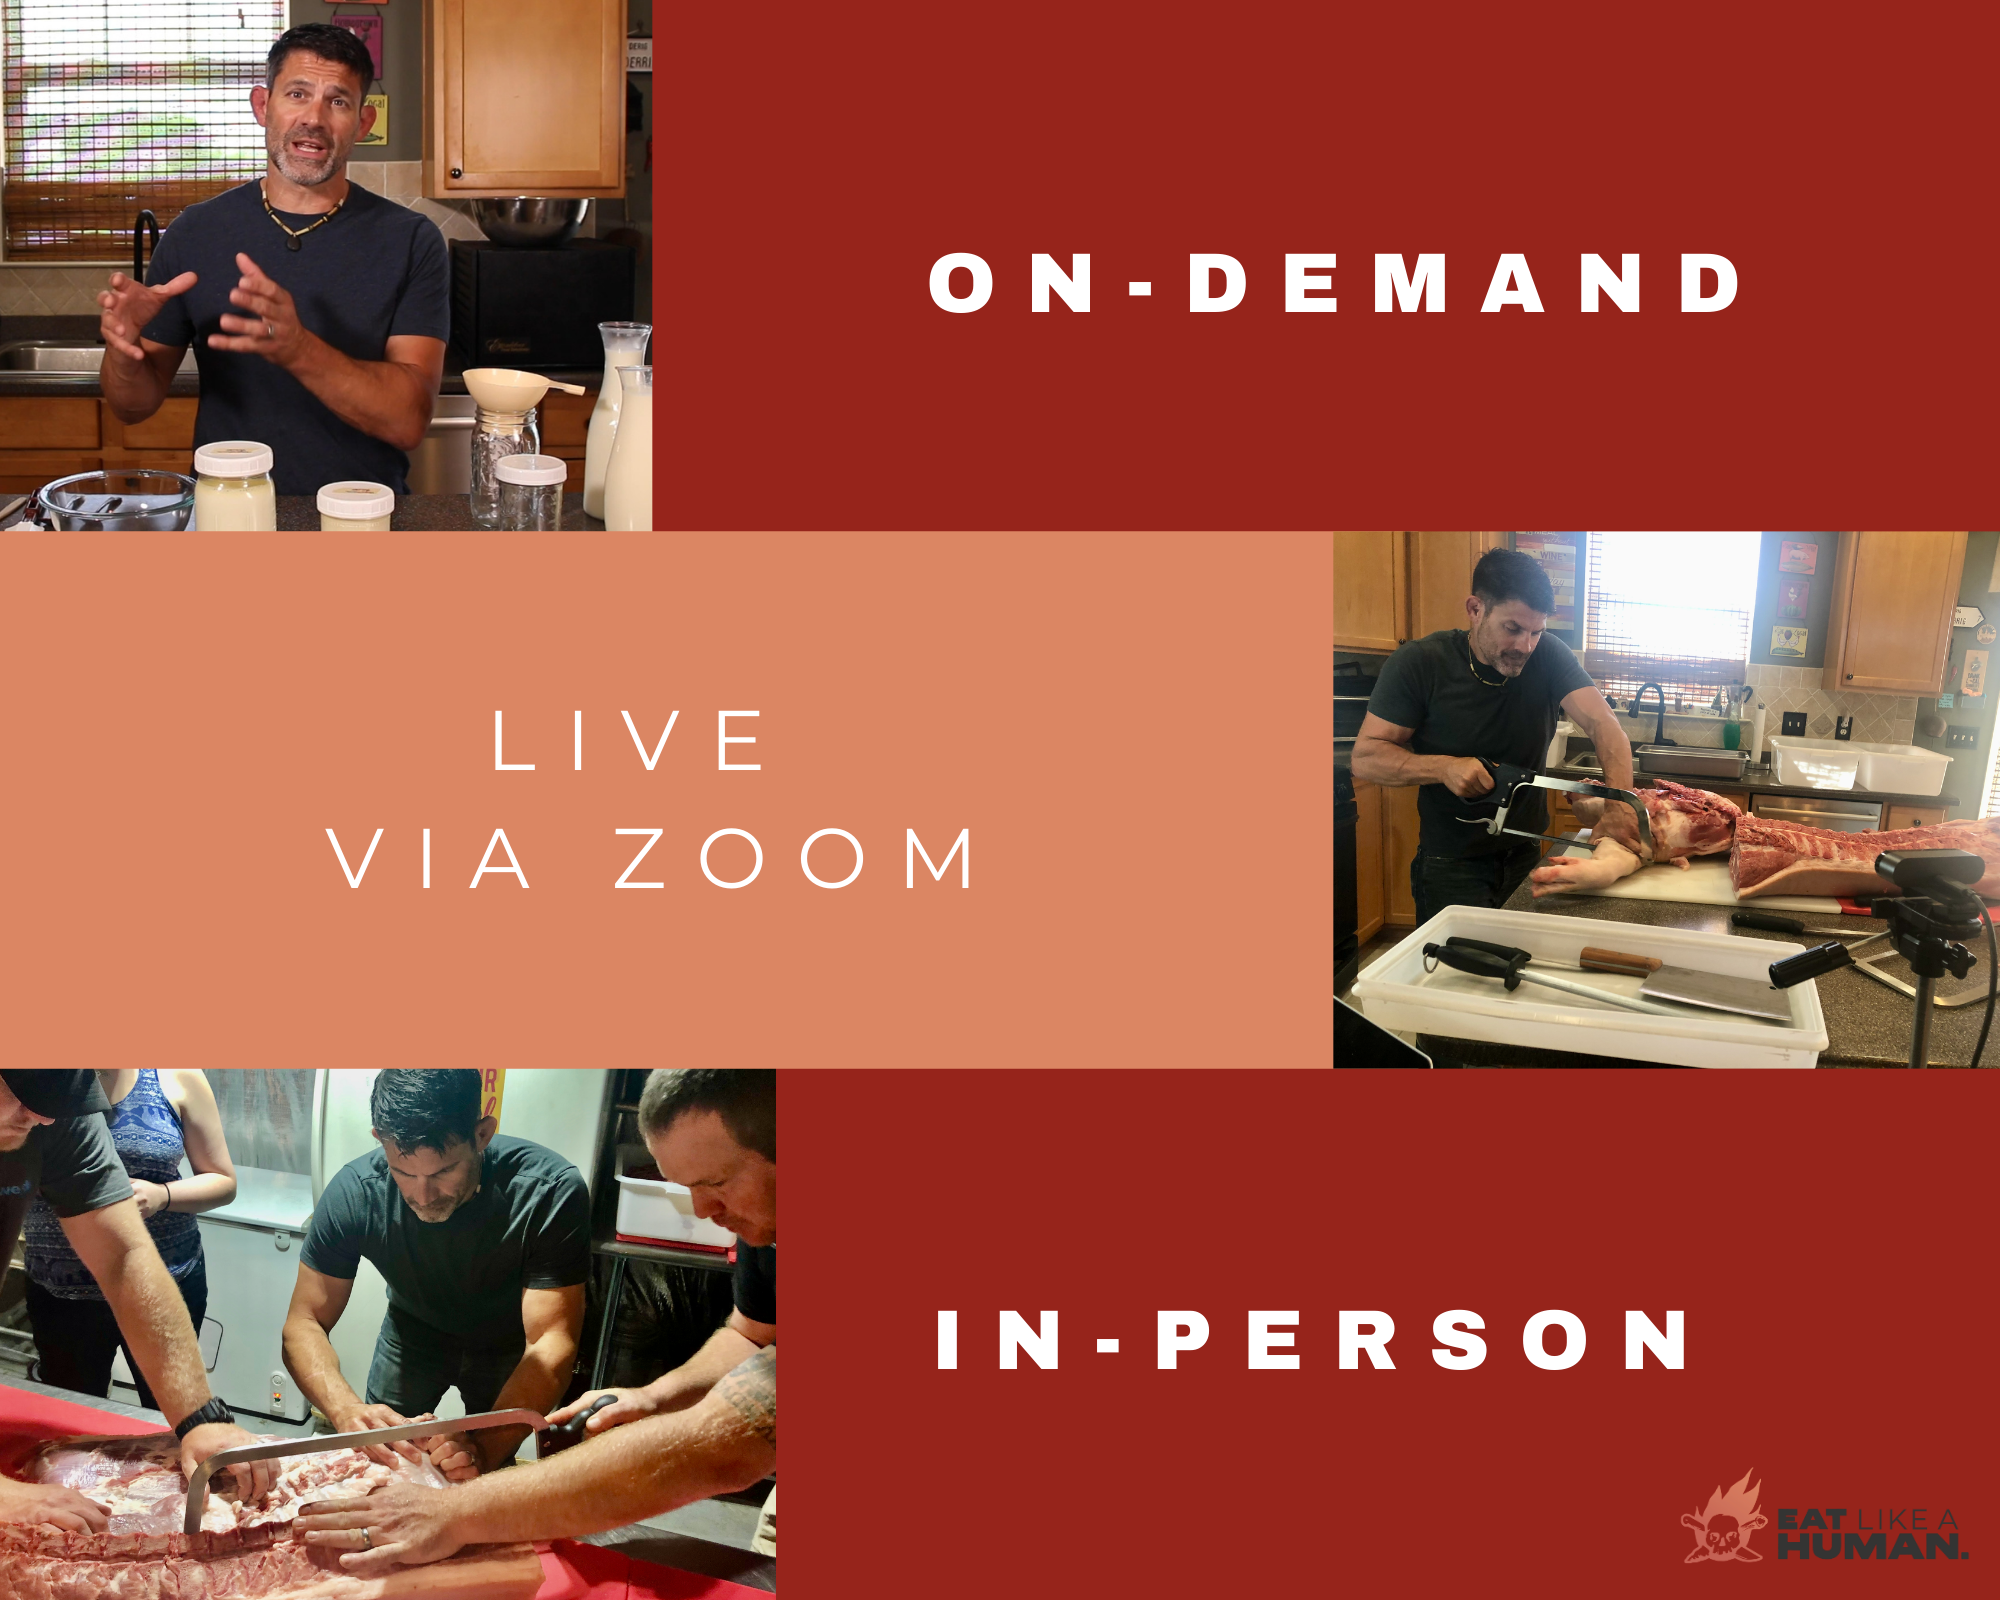 3 types of classes in on-demand, live via zoom and in person